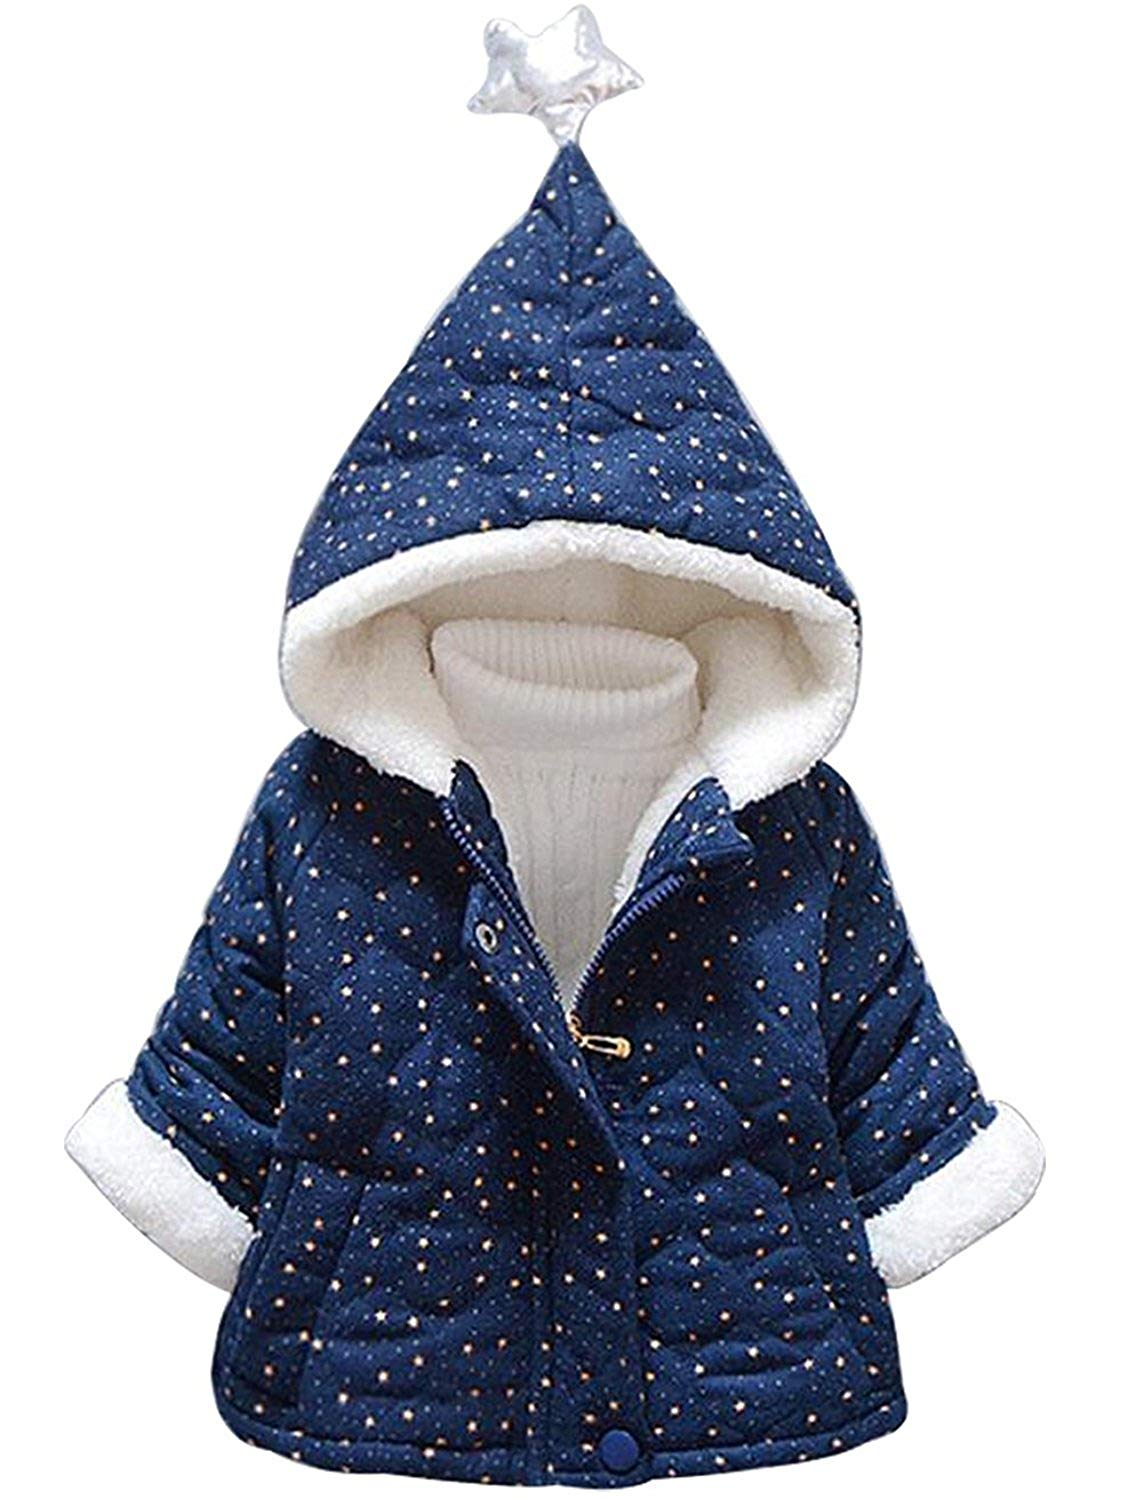 05d64f531 Get Quotations · Jojobaby Baby Boys Girls Fleece Star Print Hooded Snowsuit Winter  Warm Thick Hooded Down Windproof Jacket